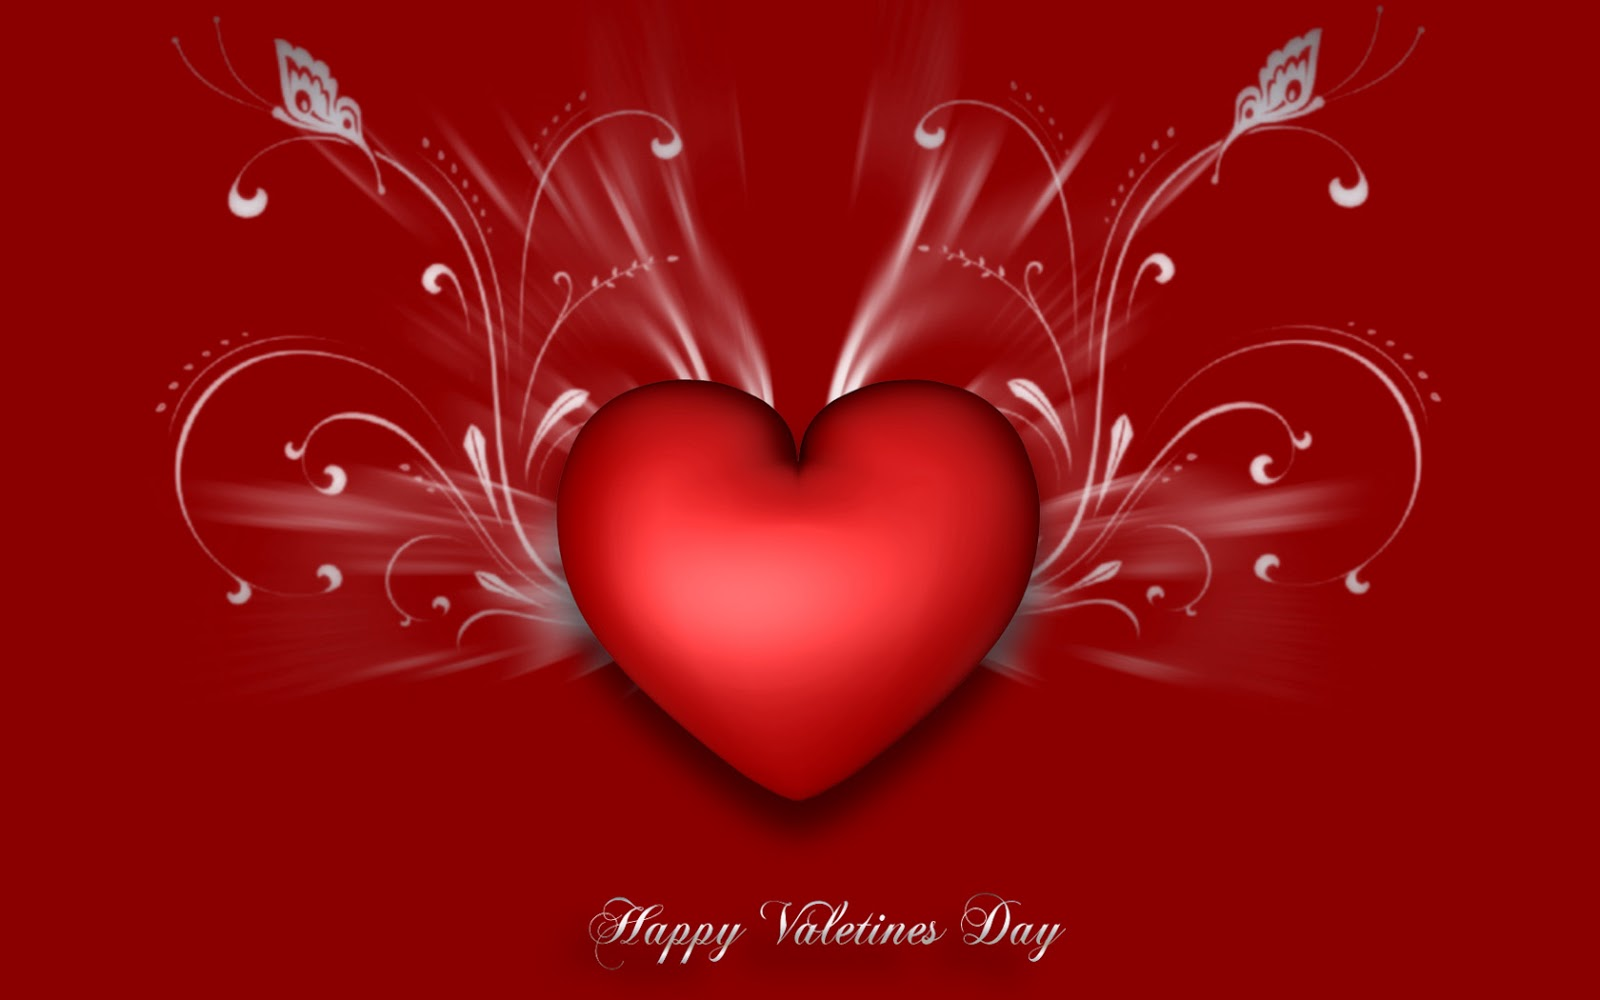 Valentine Fever, Valentine Celebration, February 14, Relationship, Love and Romance, Valentine Experiences, Valentine Love, Valentine Spending,